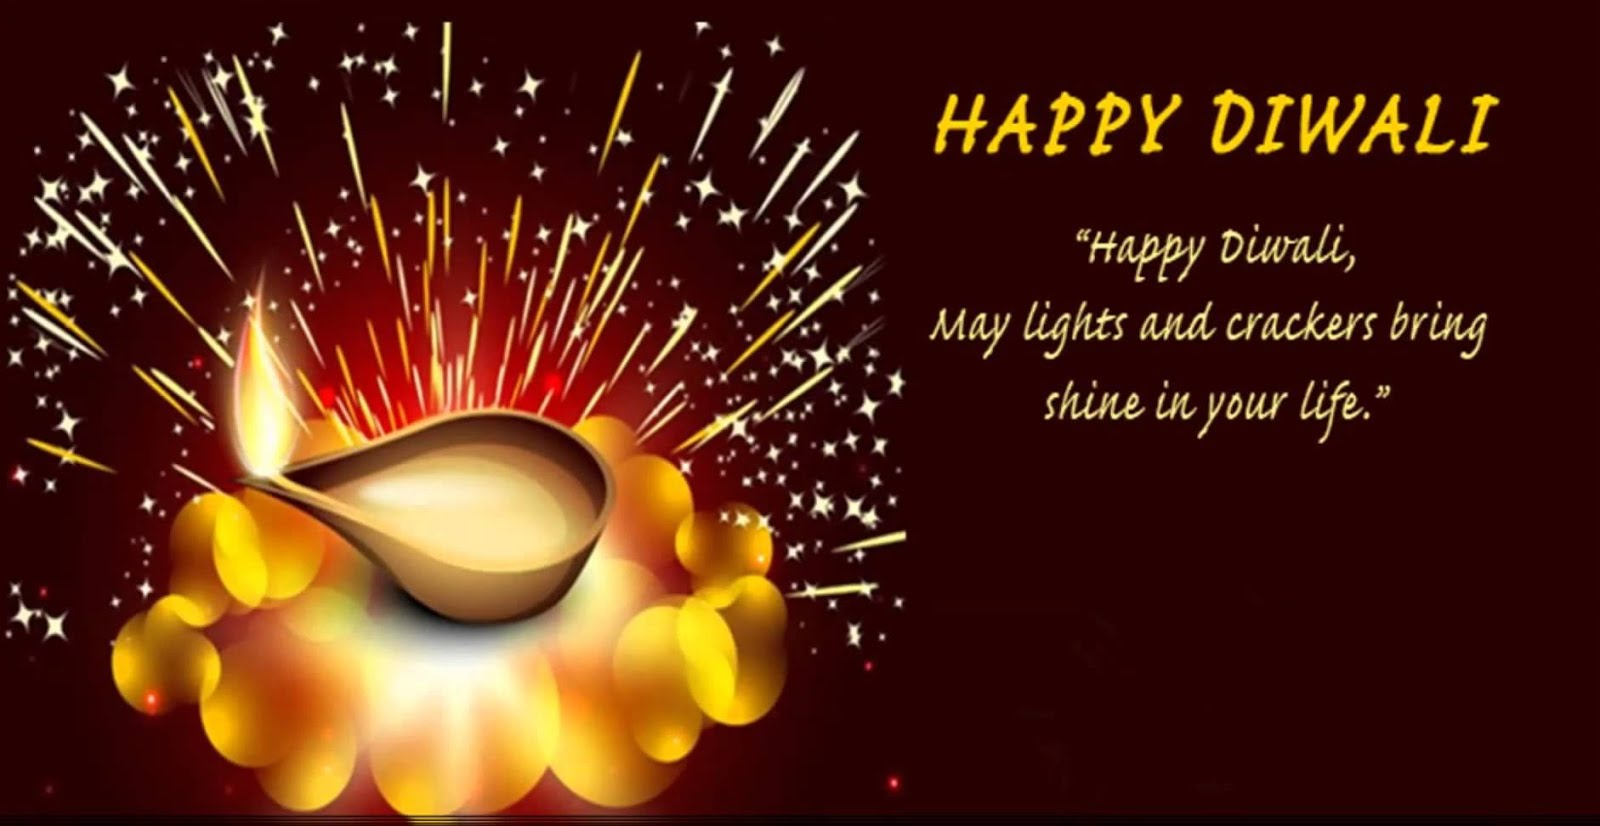 Diwali 2018 Diwali Wishes Messages Sms Images And Facebook